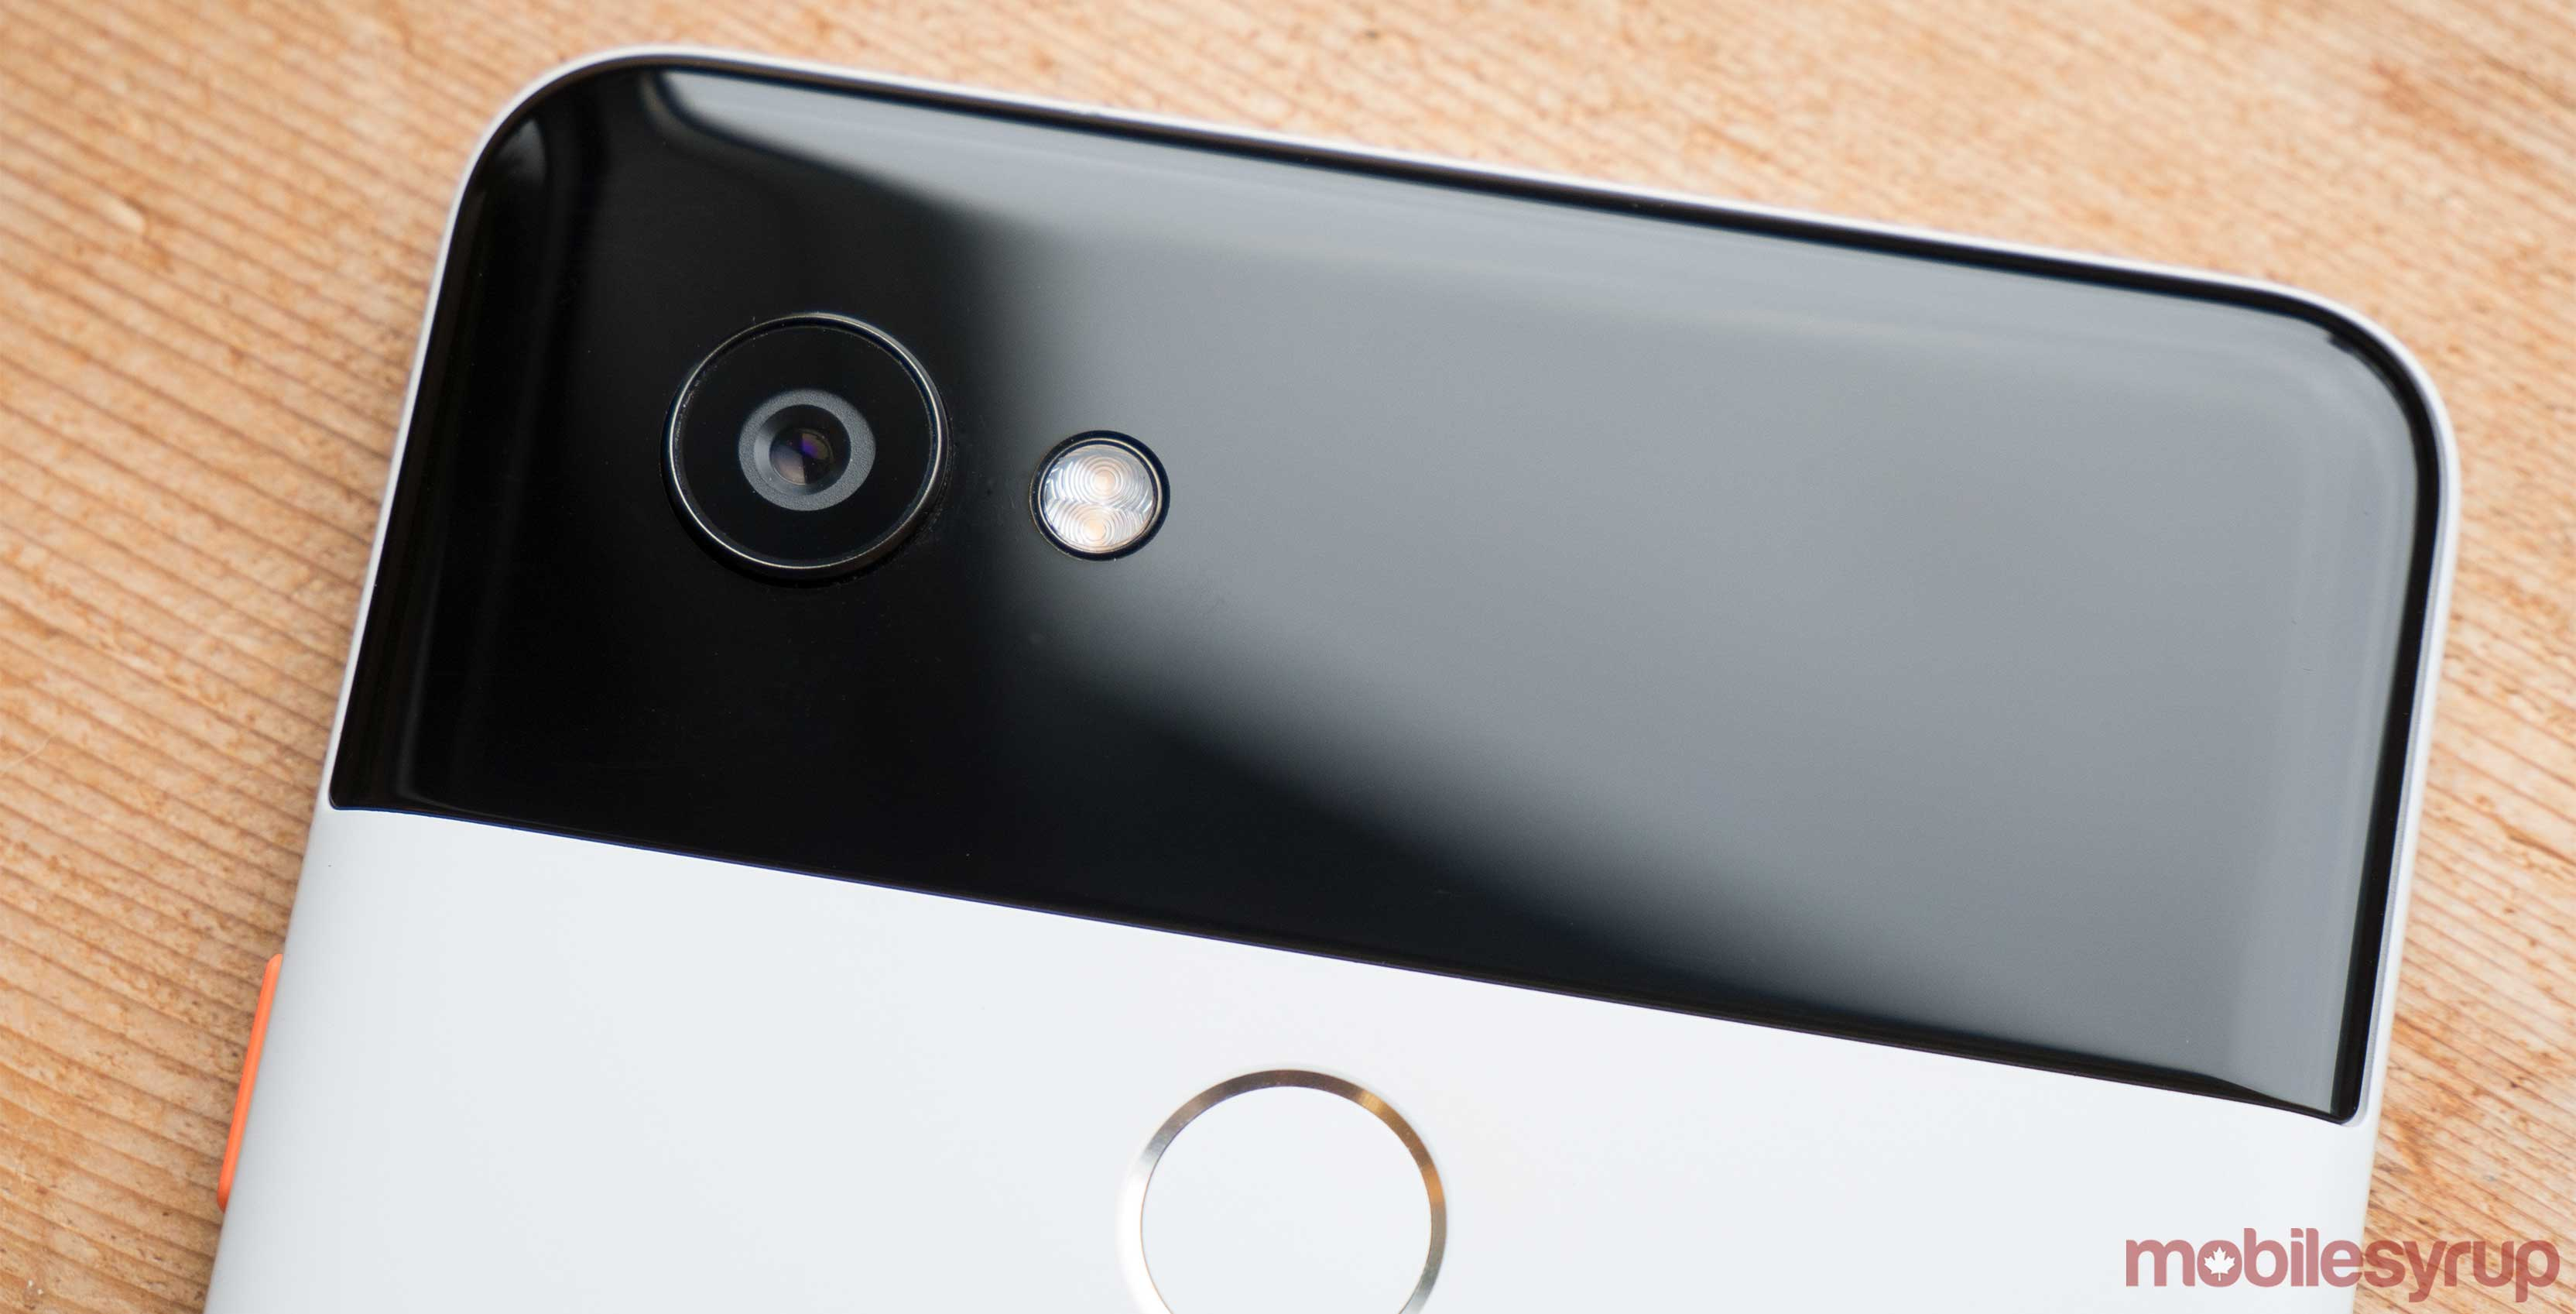 Here's What Android P Preview Tells Us About Google Pixel 3